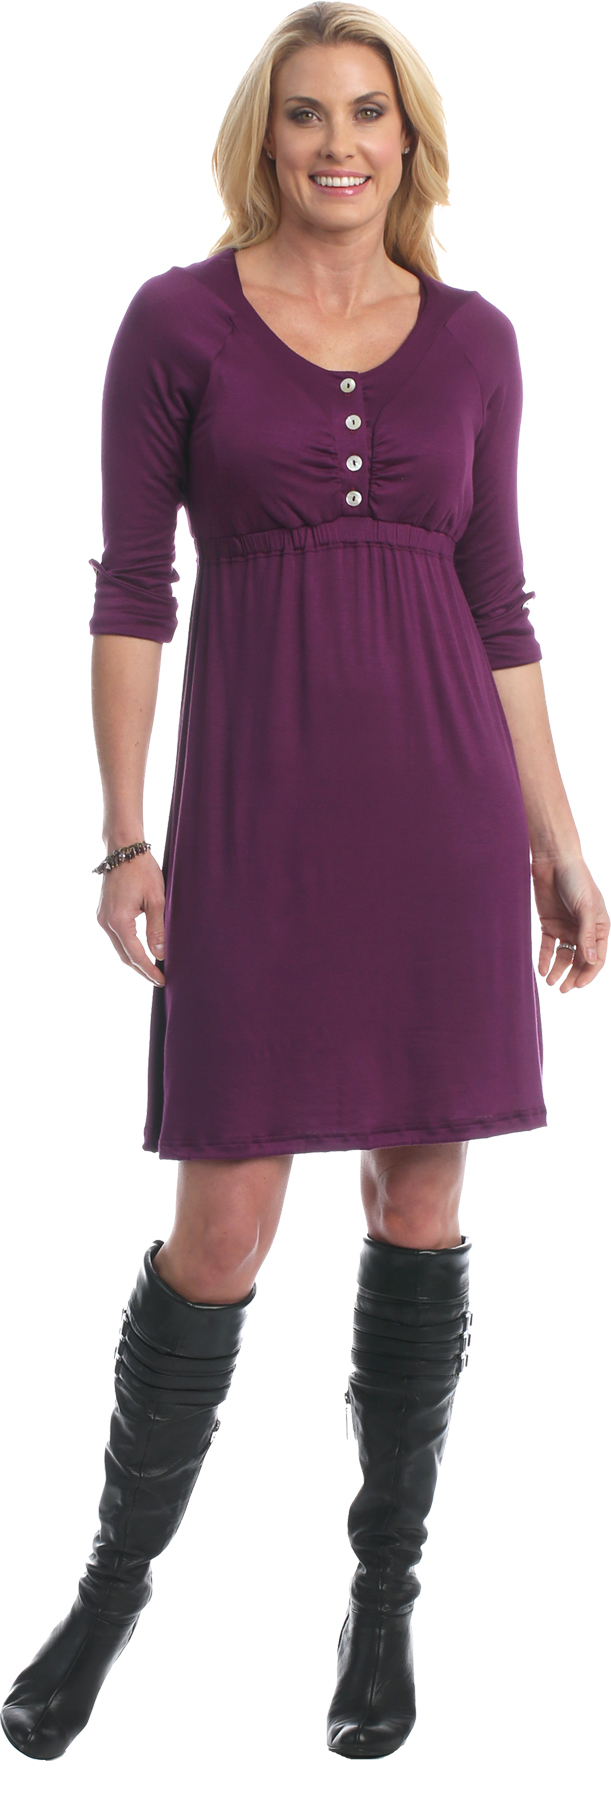 nixilu-mimi-nursing-dress-grape.jpg